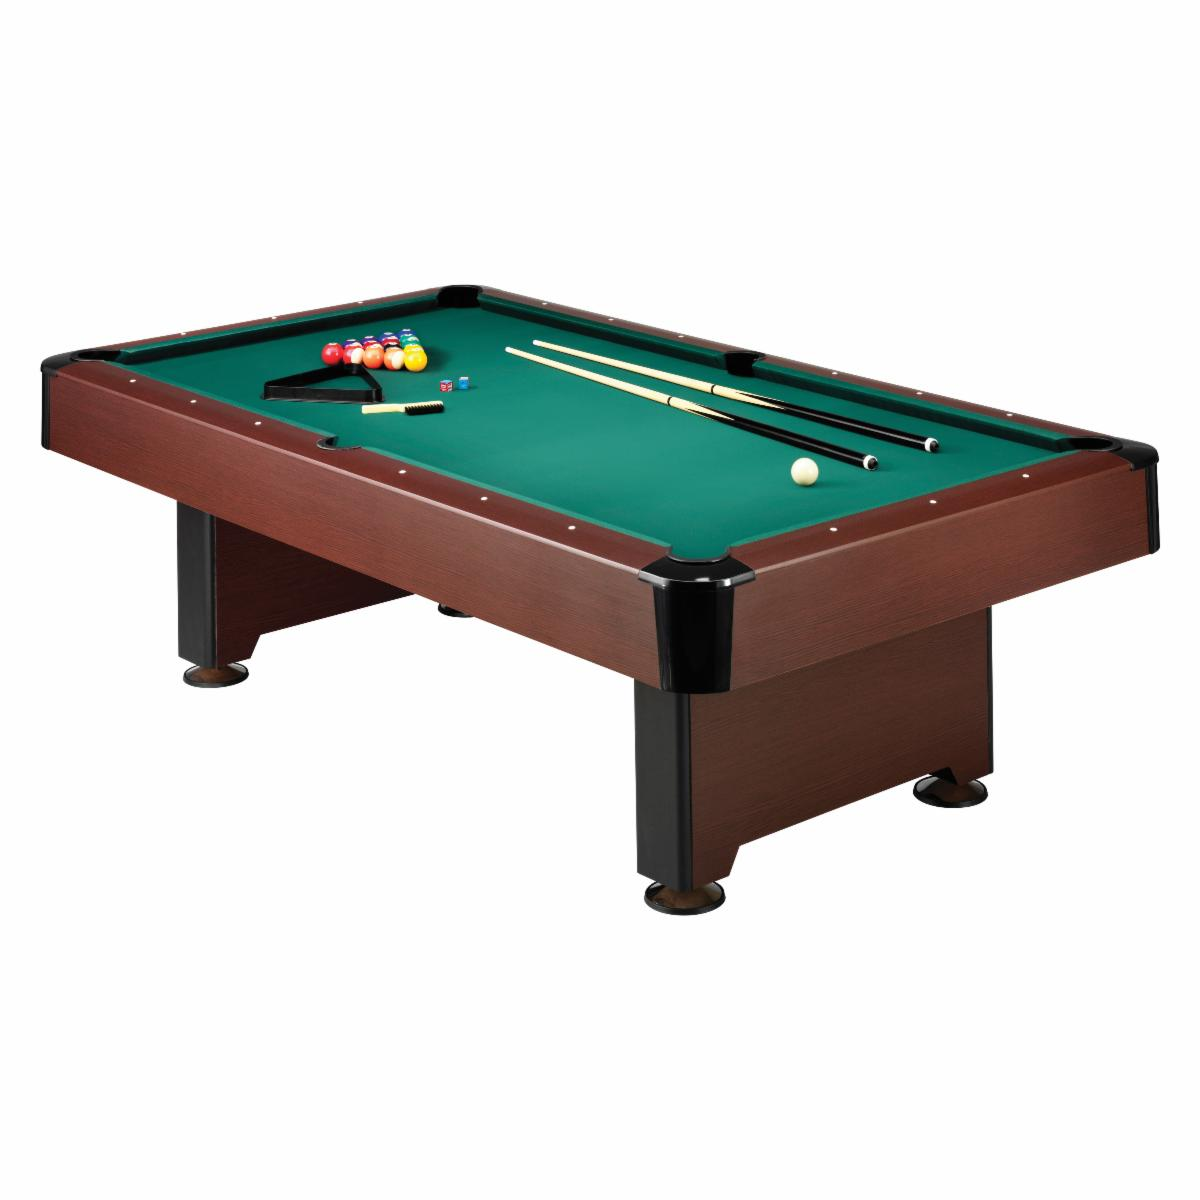 How to measure your billiard table champion billiards for 10 foot billiard table